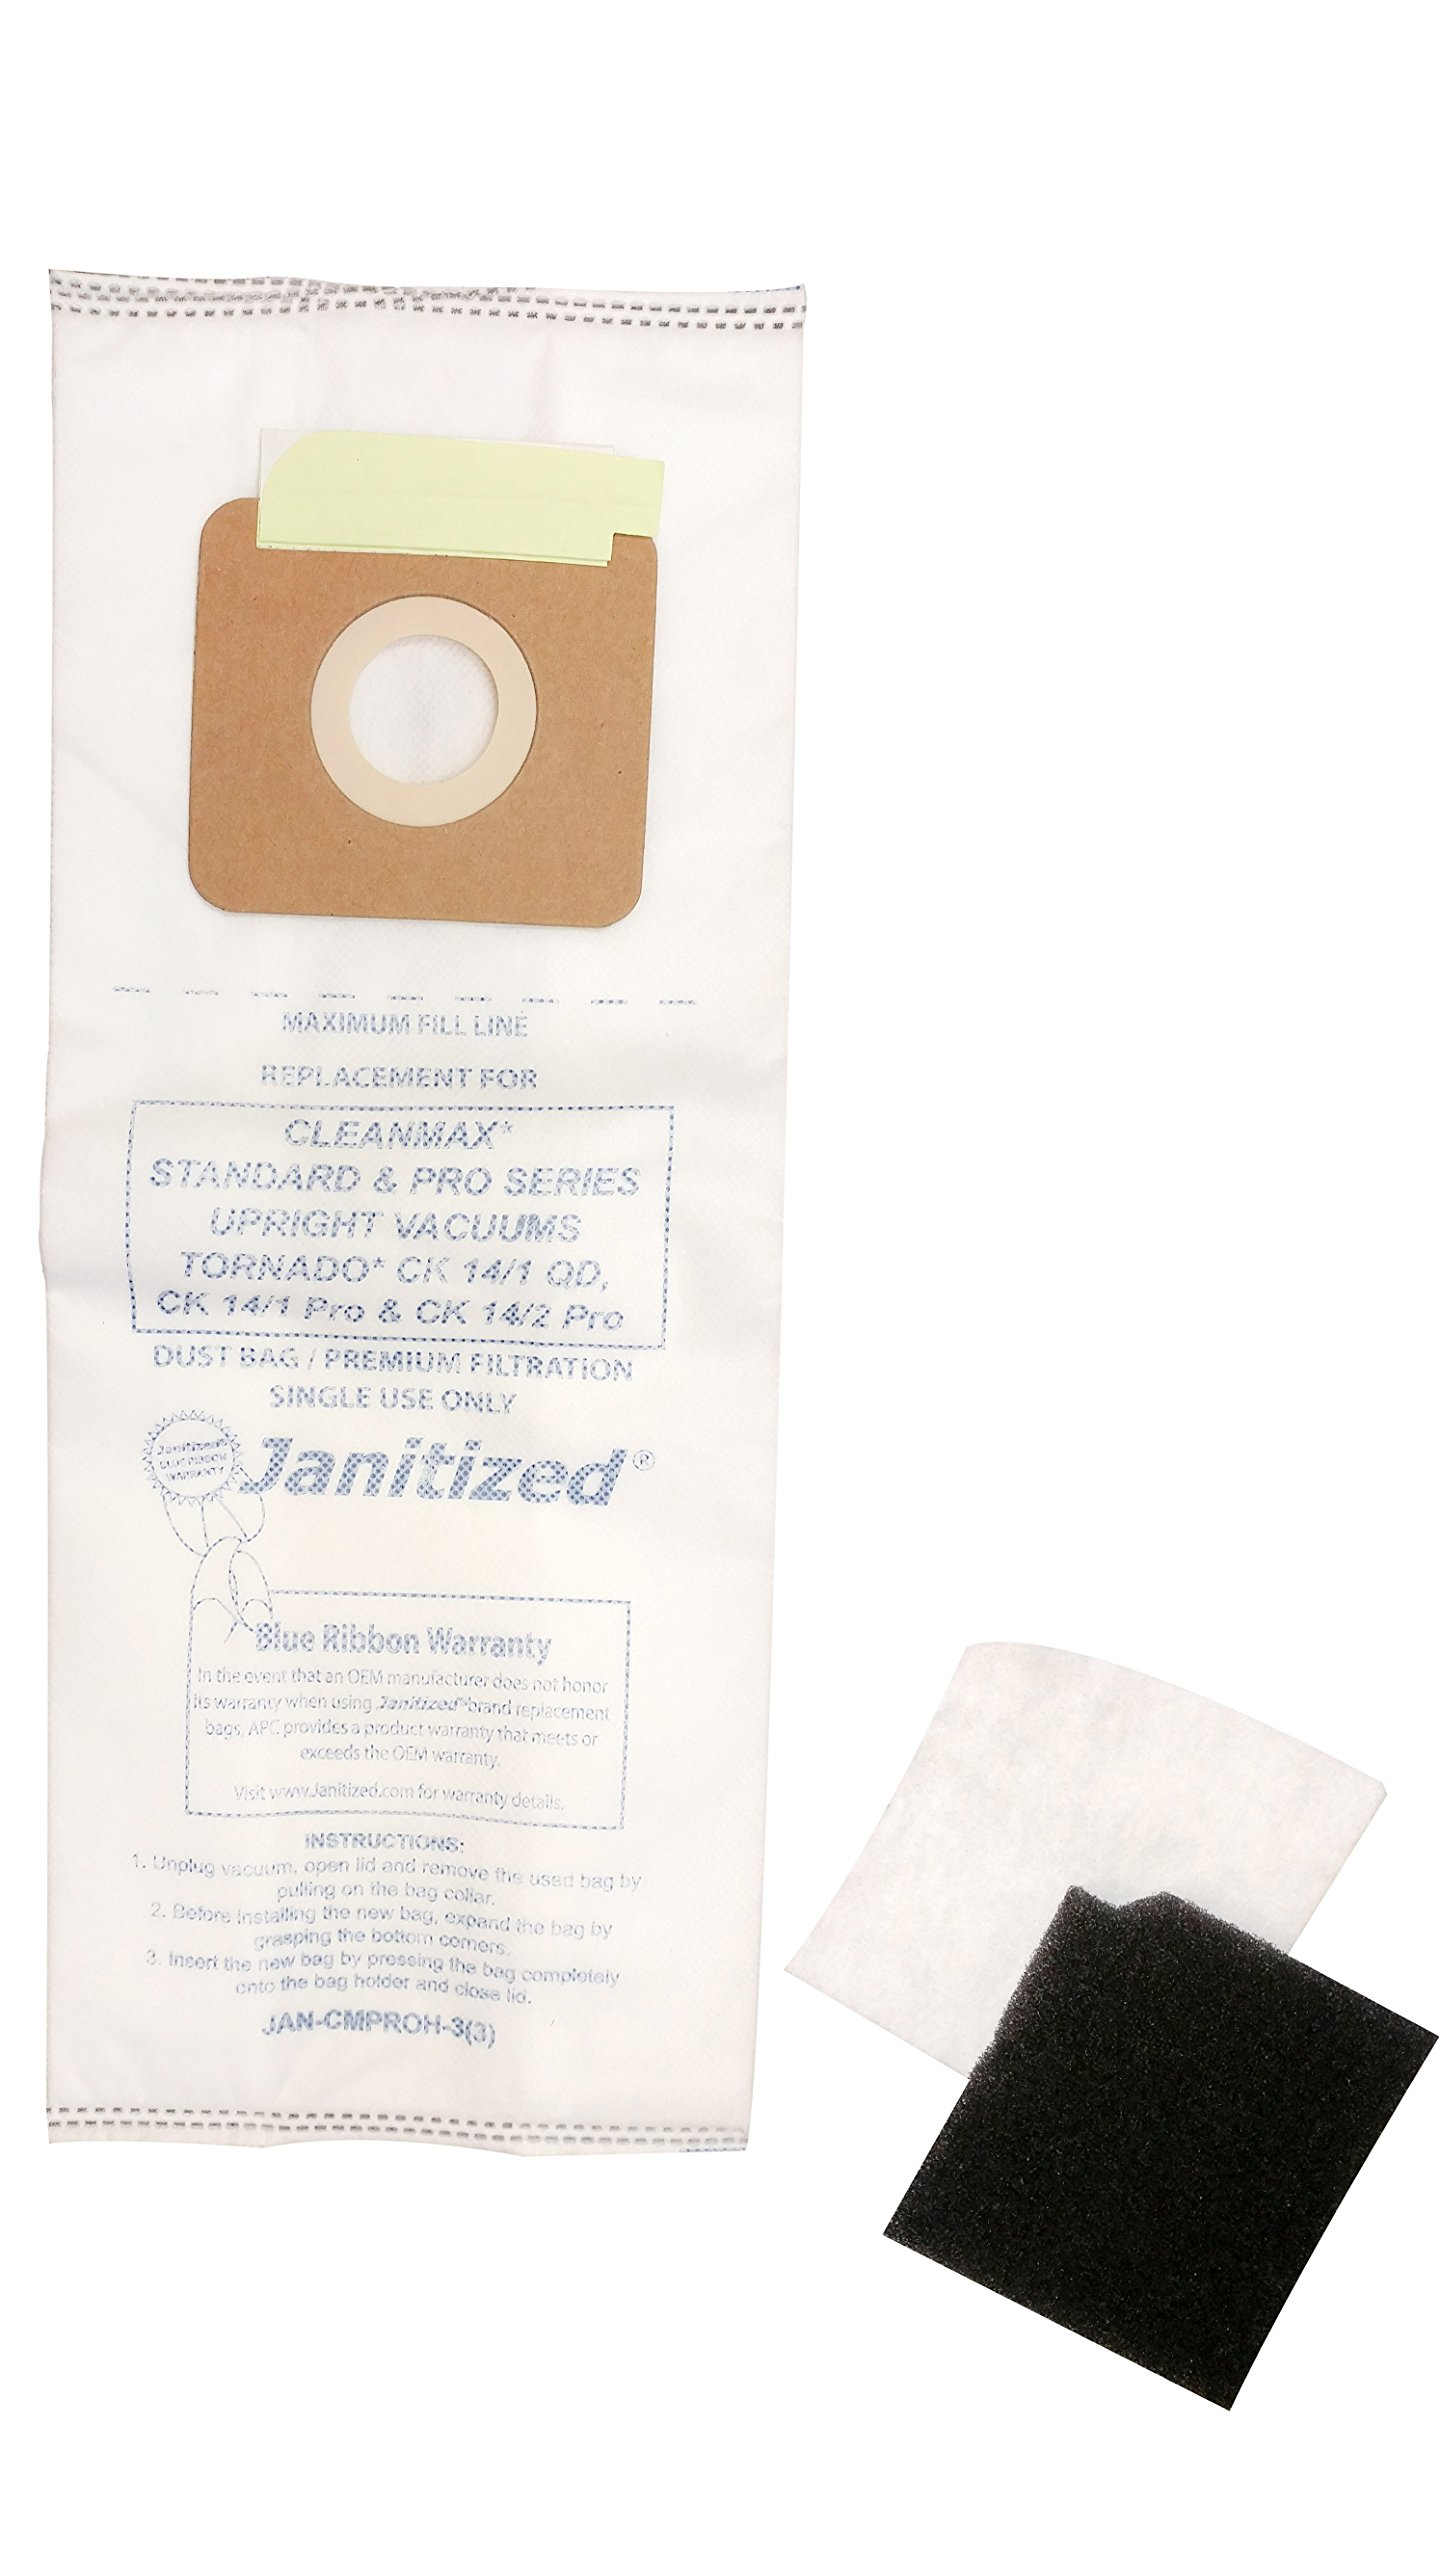 Janitized JAN-CMPROH-3(3) Paper High Efficiency Premium Replacement Commercial Vacuum Bag for CleanMax Standard & Pro Series, Tornado CK 14 QD & Pro Vacuum Cleaners (12-3 Packs) by Janitized